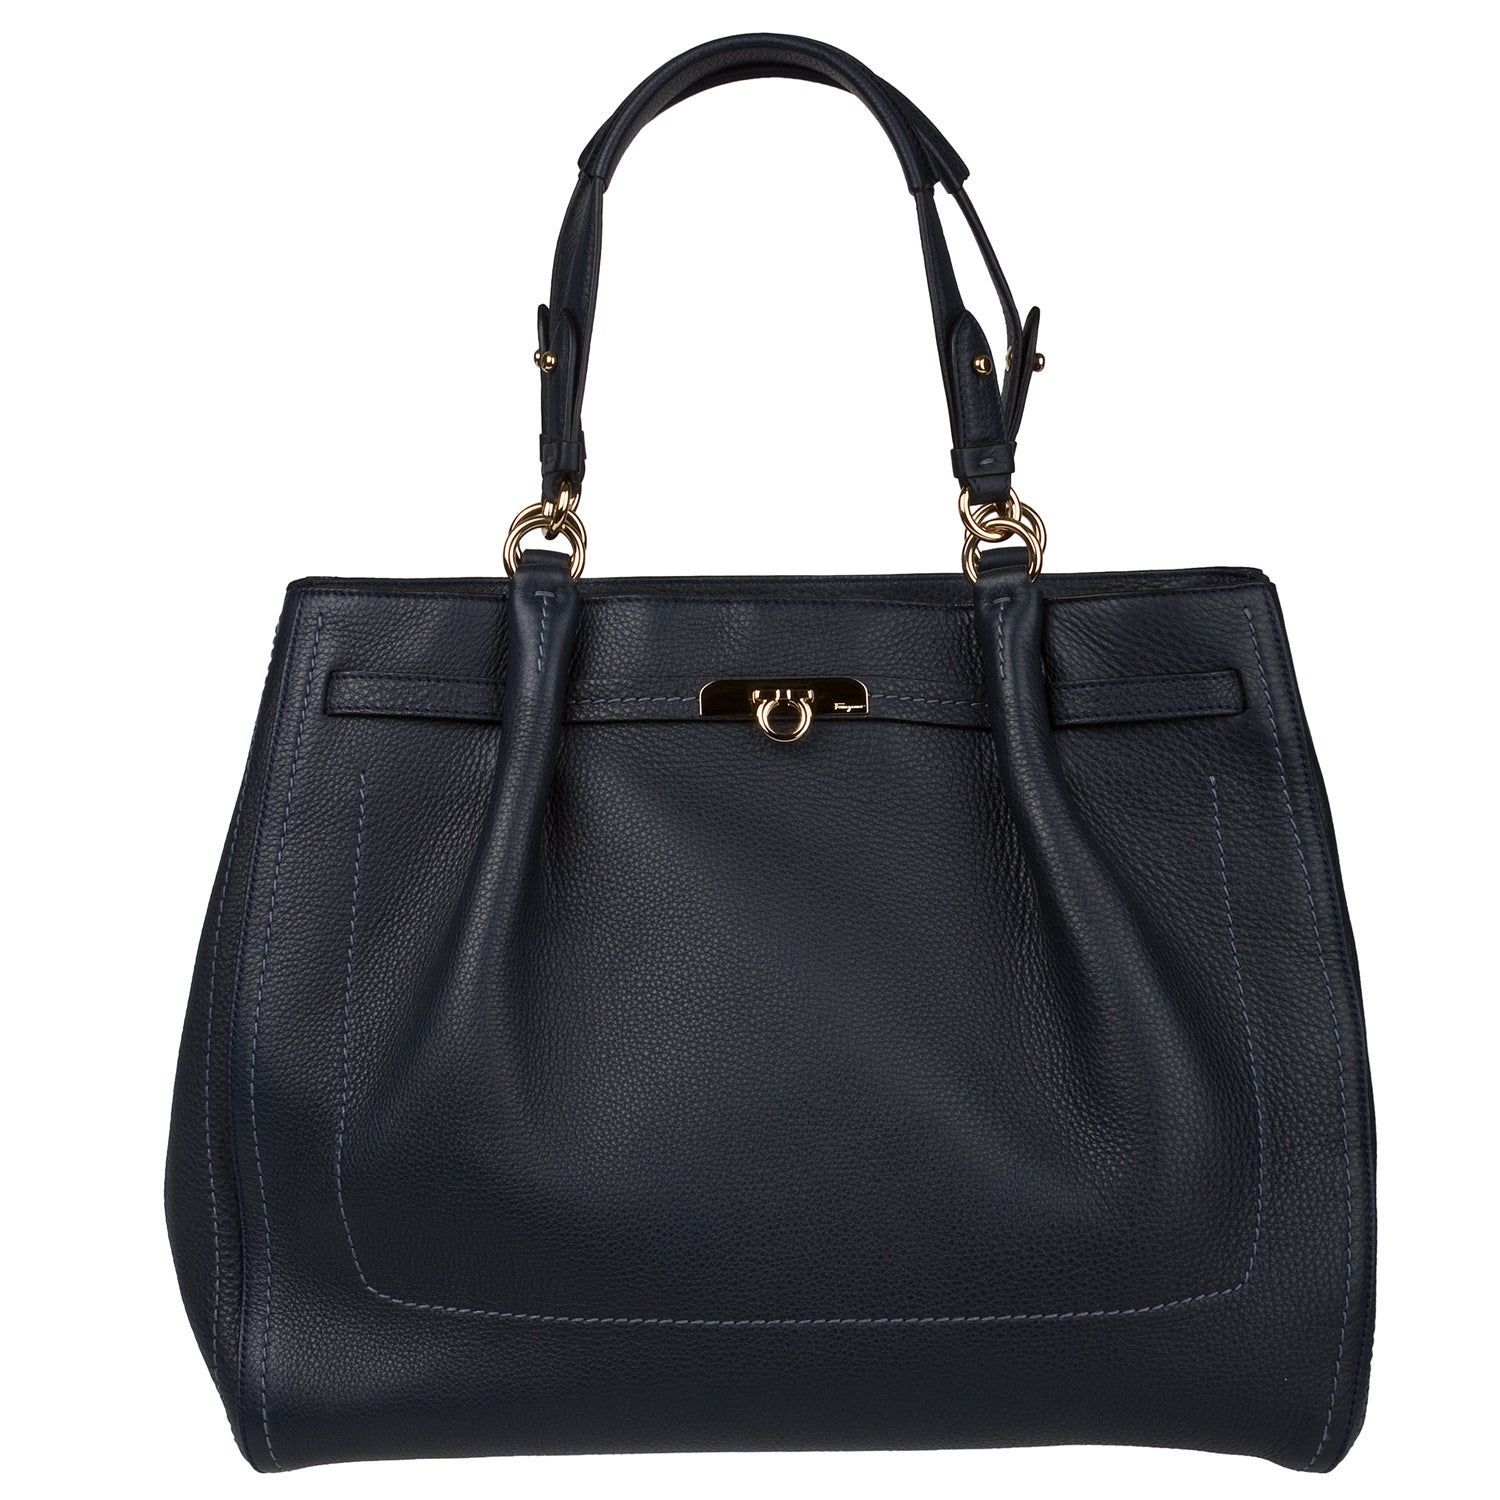 Navy Bag Tote Free Shipping Ferragamo Shop Salvatore Today Leather Ygbfv7y6